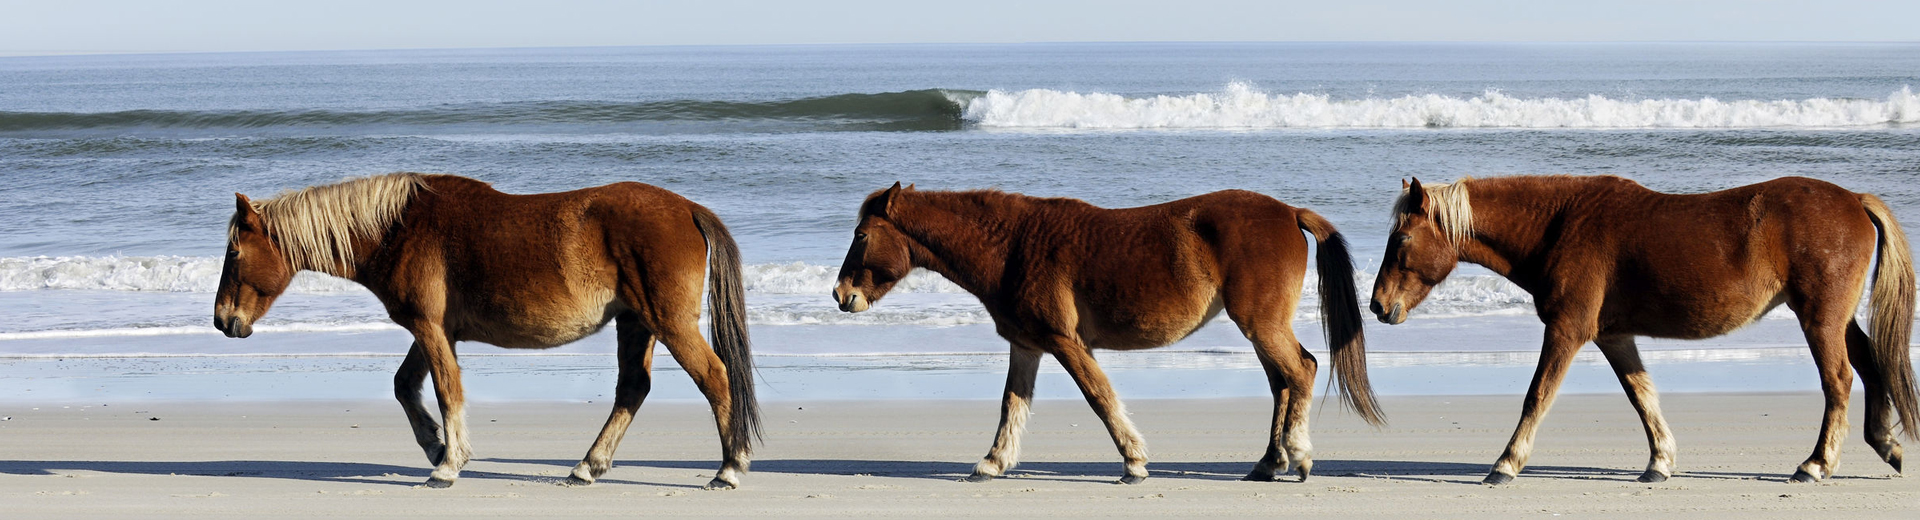 wild horses at corolla beach